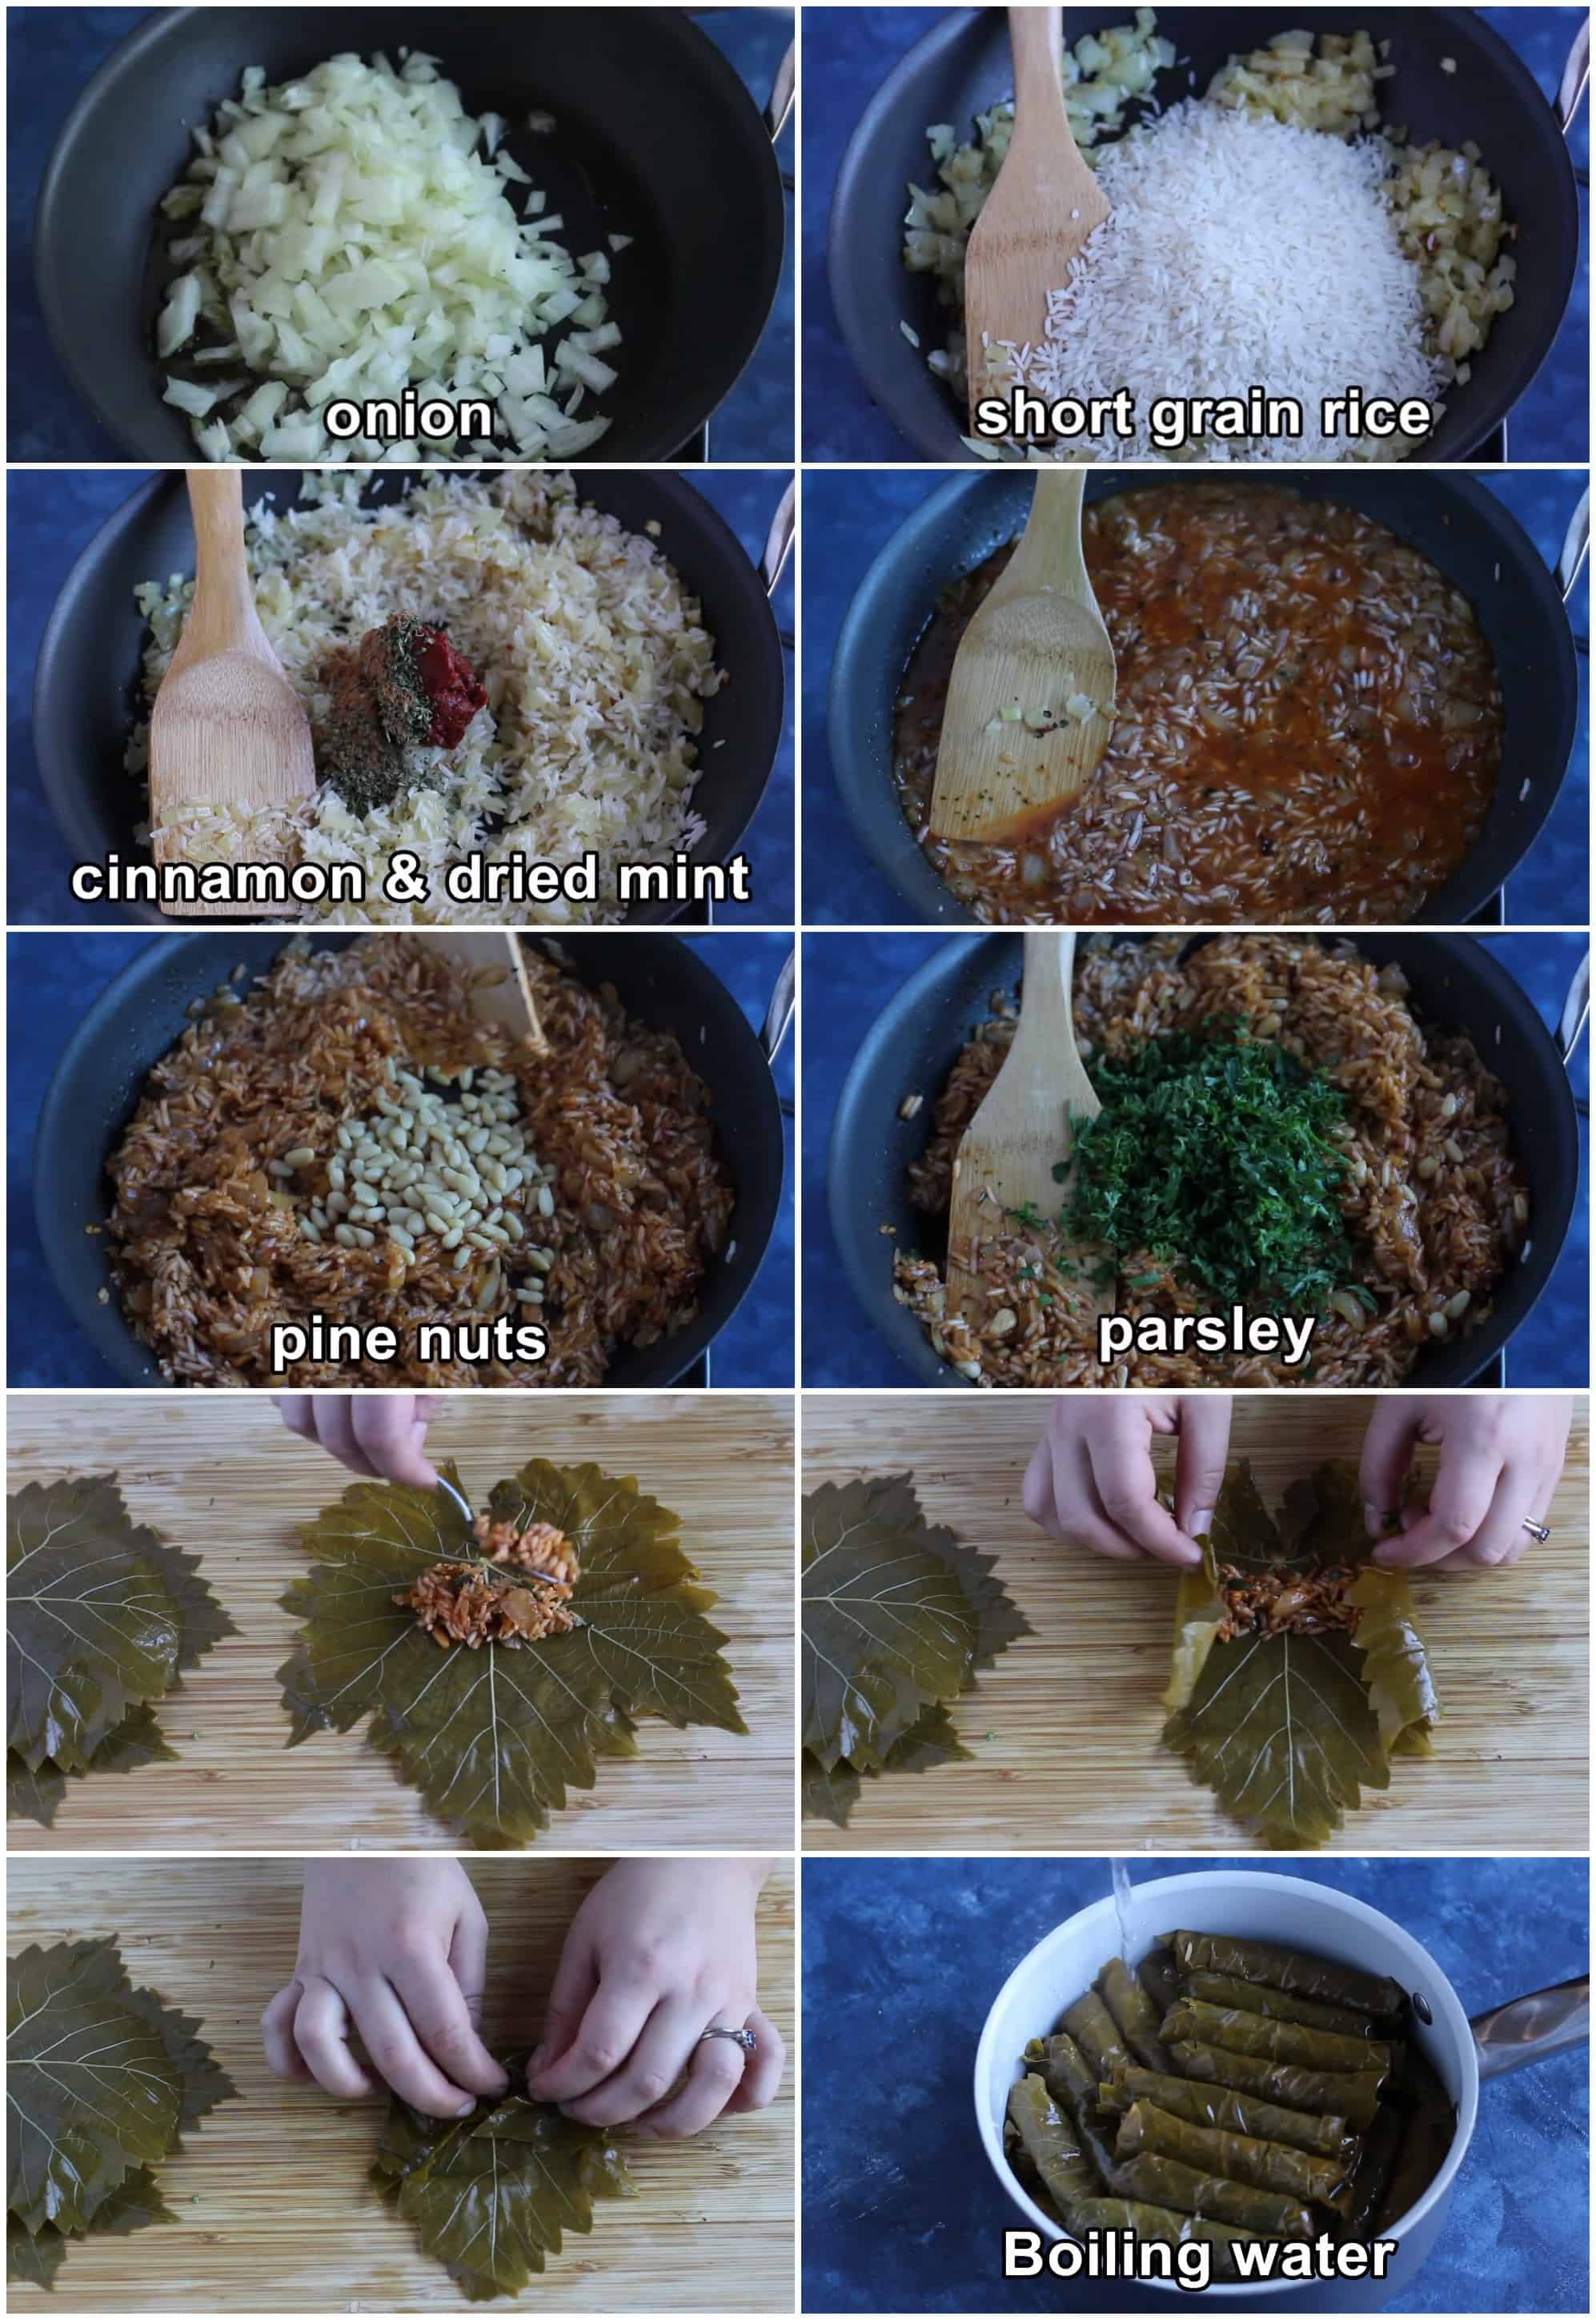 make the dolma filling by cooking onions and rice with spices and tomato paste. Add pine nuts and parsley then roll the dolmas. Cook with vegetable oil and water.